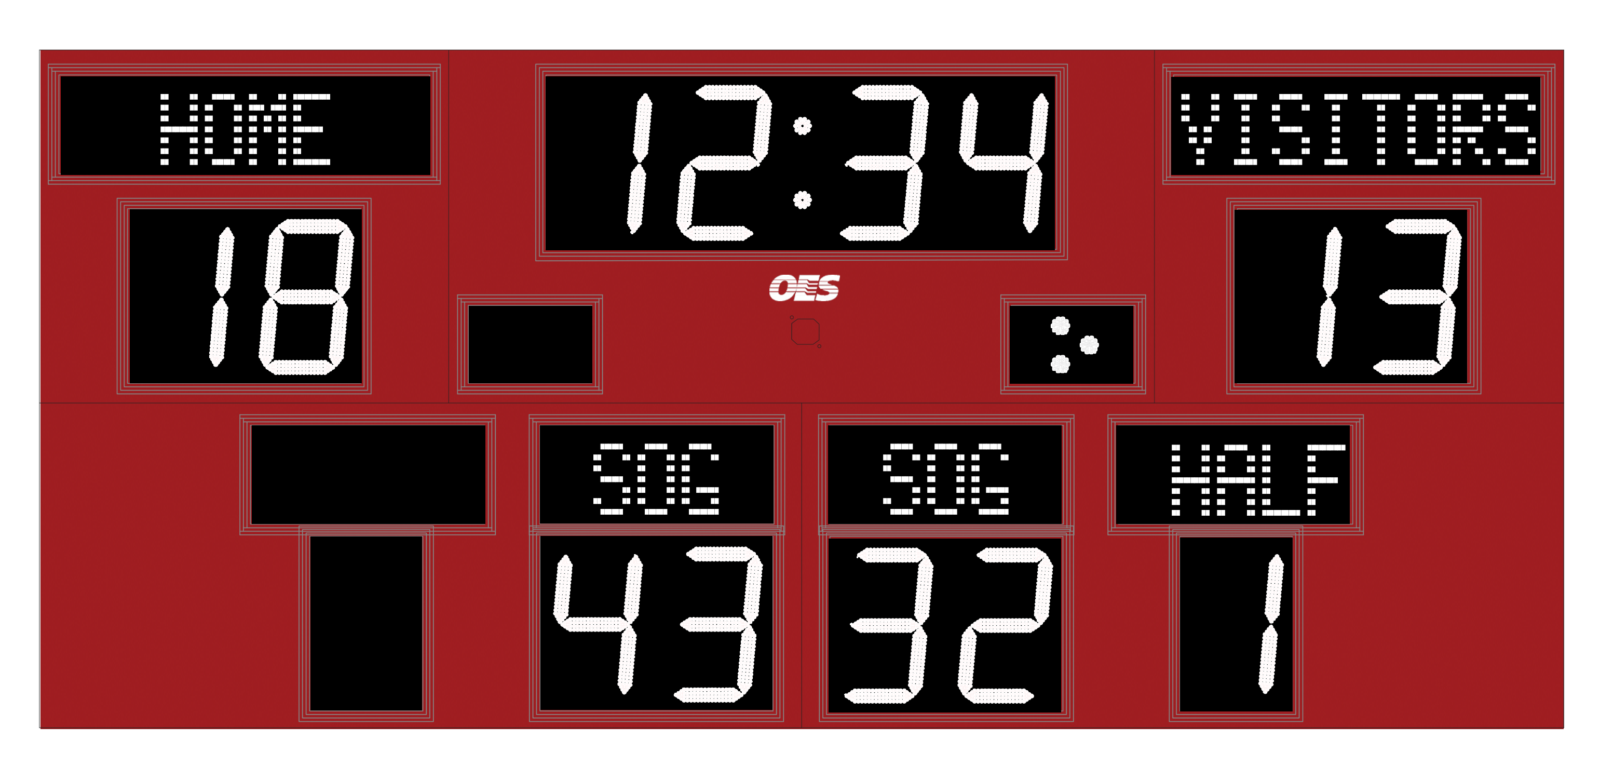 red and white scoreboard